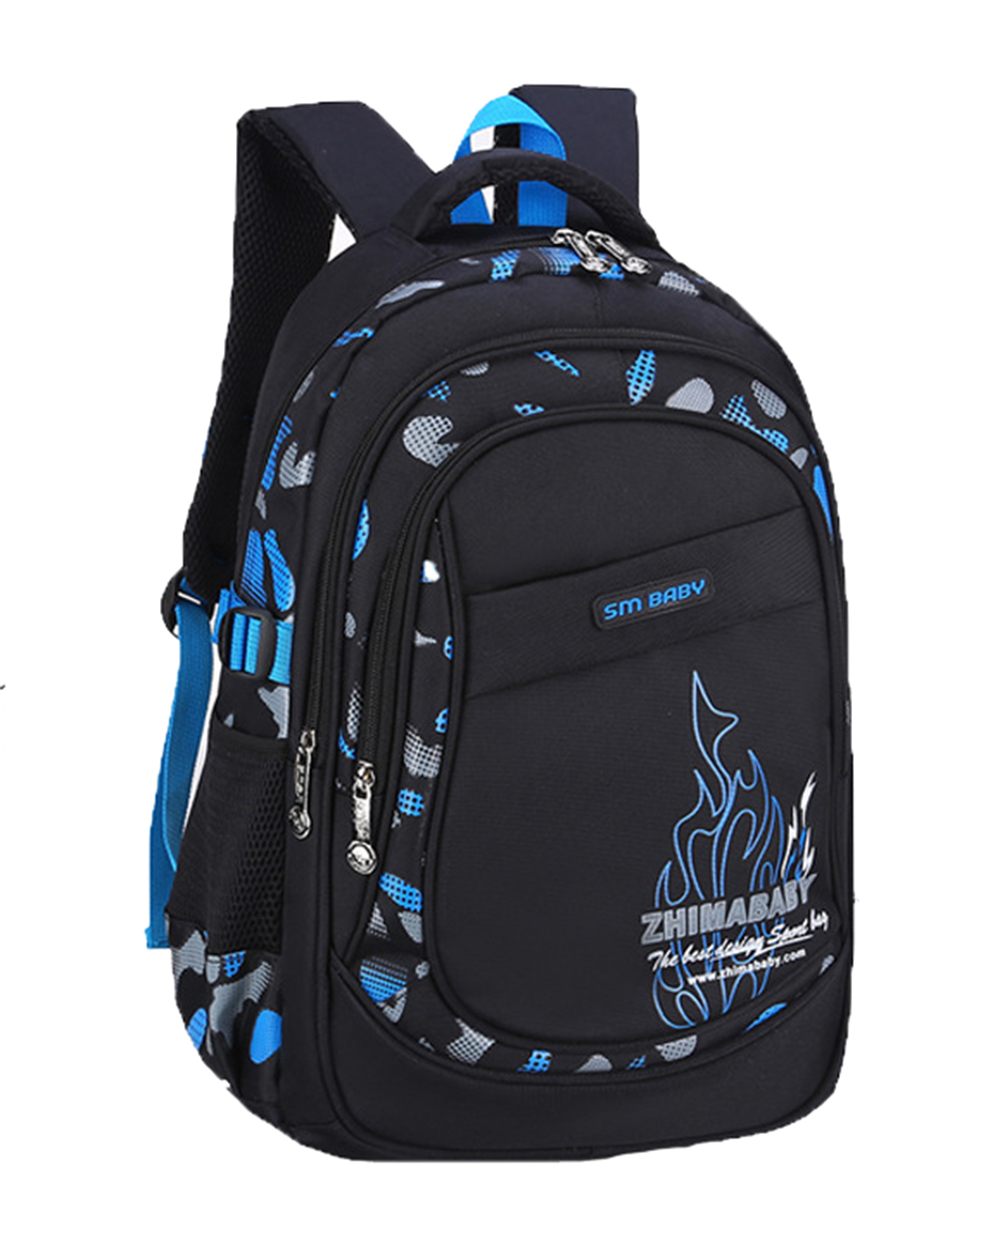 Hot New Fashion School Bags For Teenagers Candy Orthopedic Children School Backpacks Schoolbags For Girls And